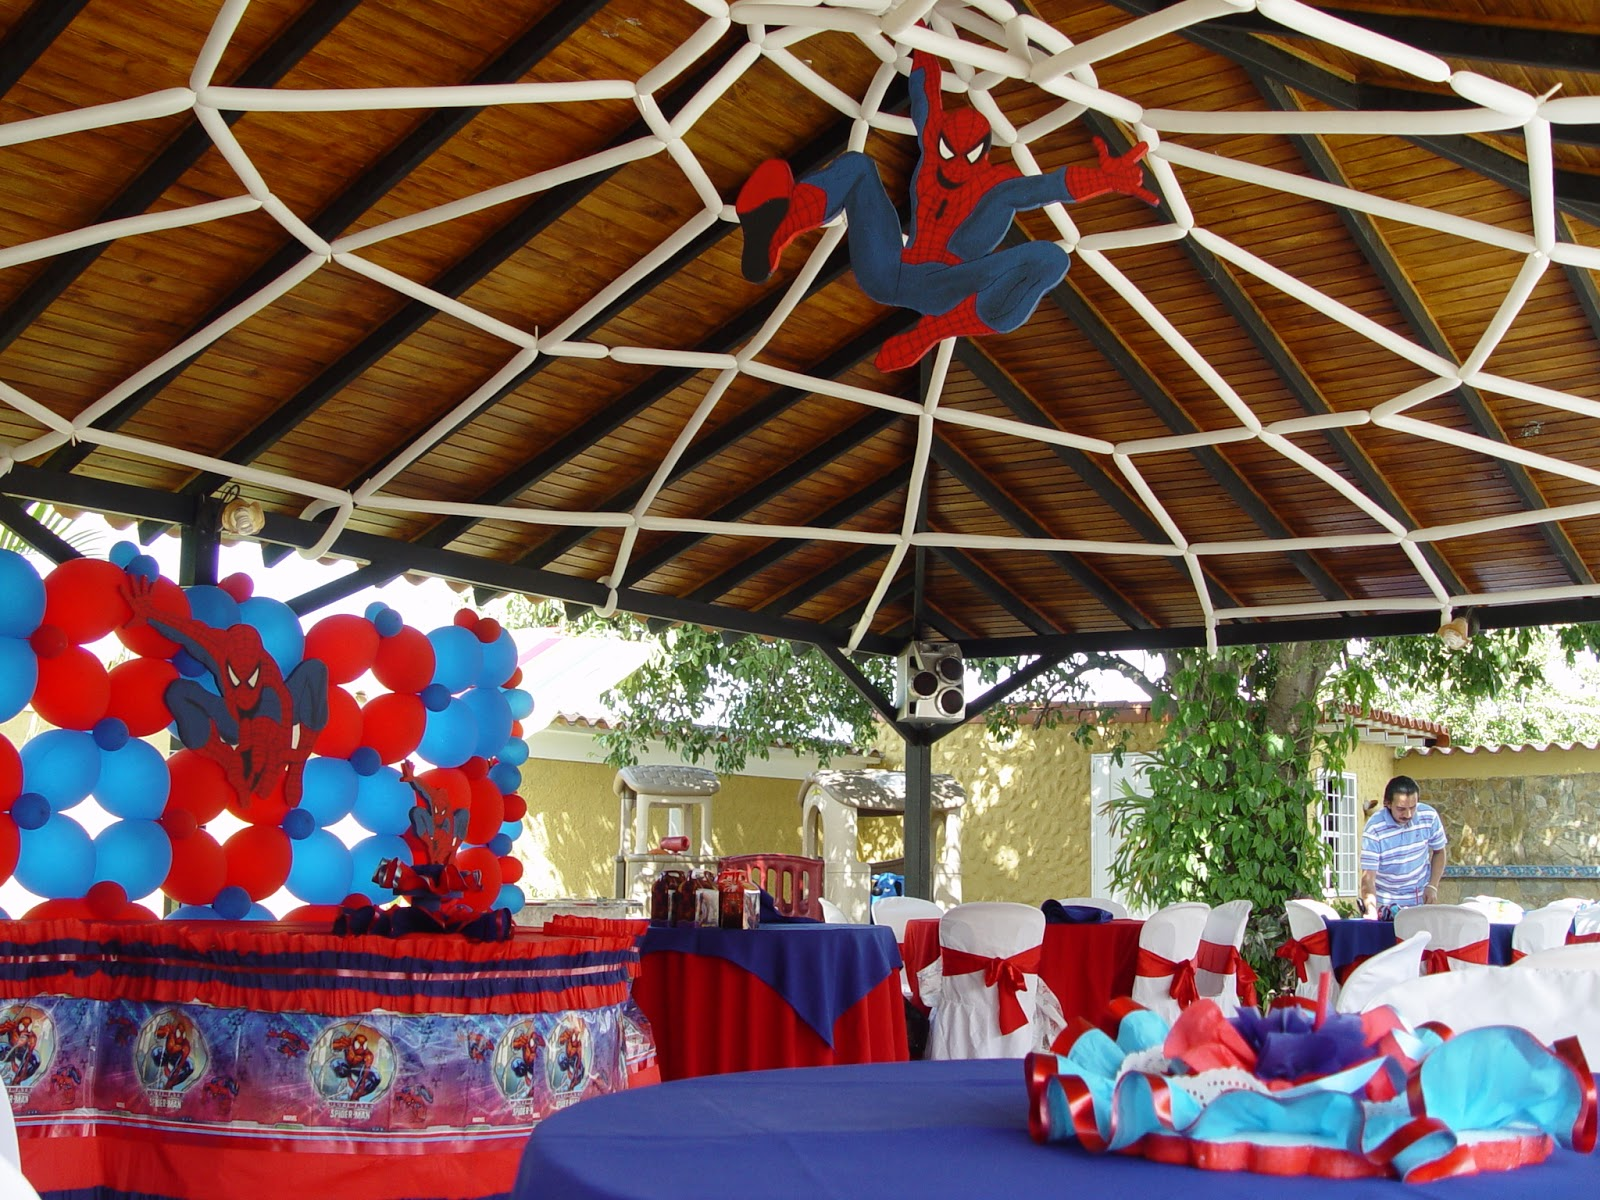 Decoracion de techos para fiestas infantiles for Buscar decoraciones